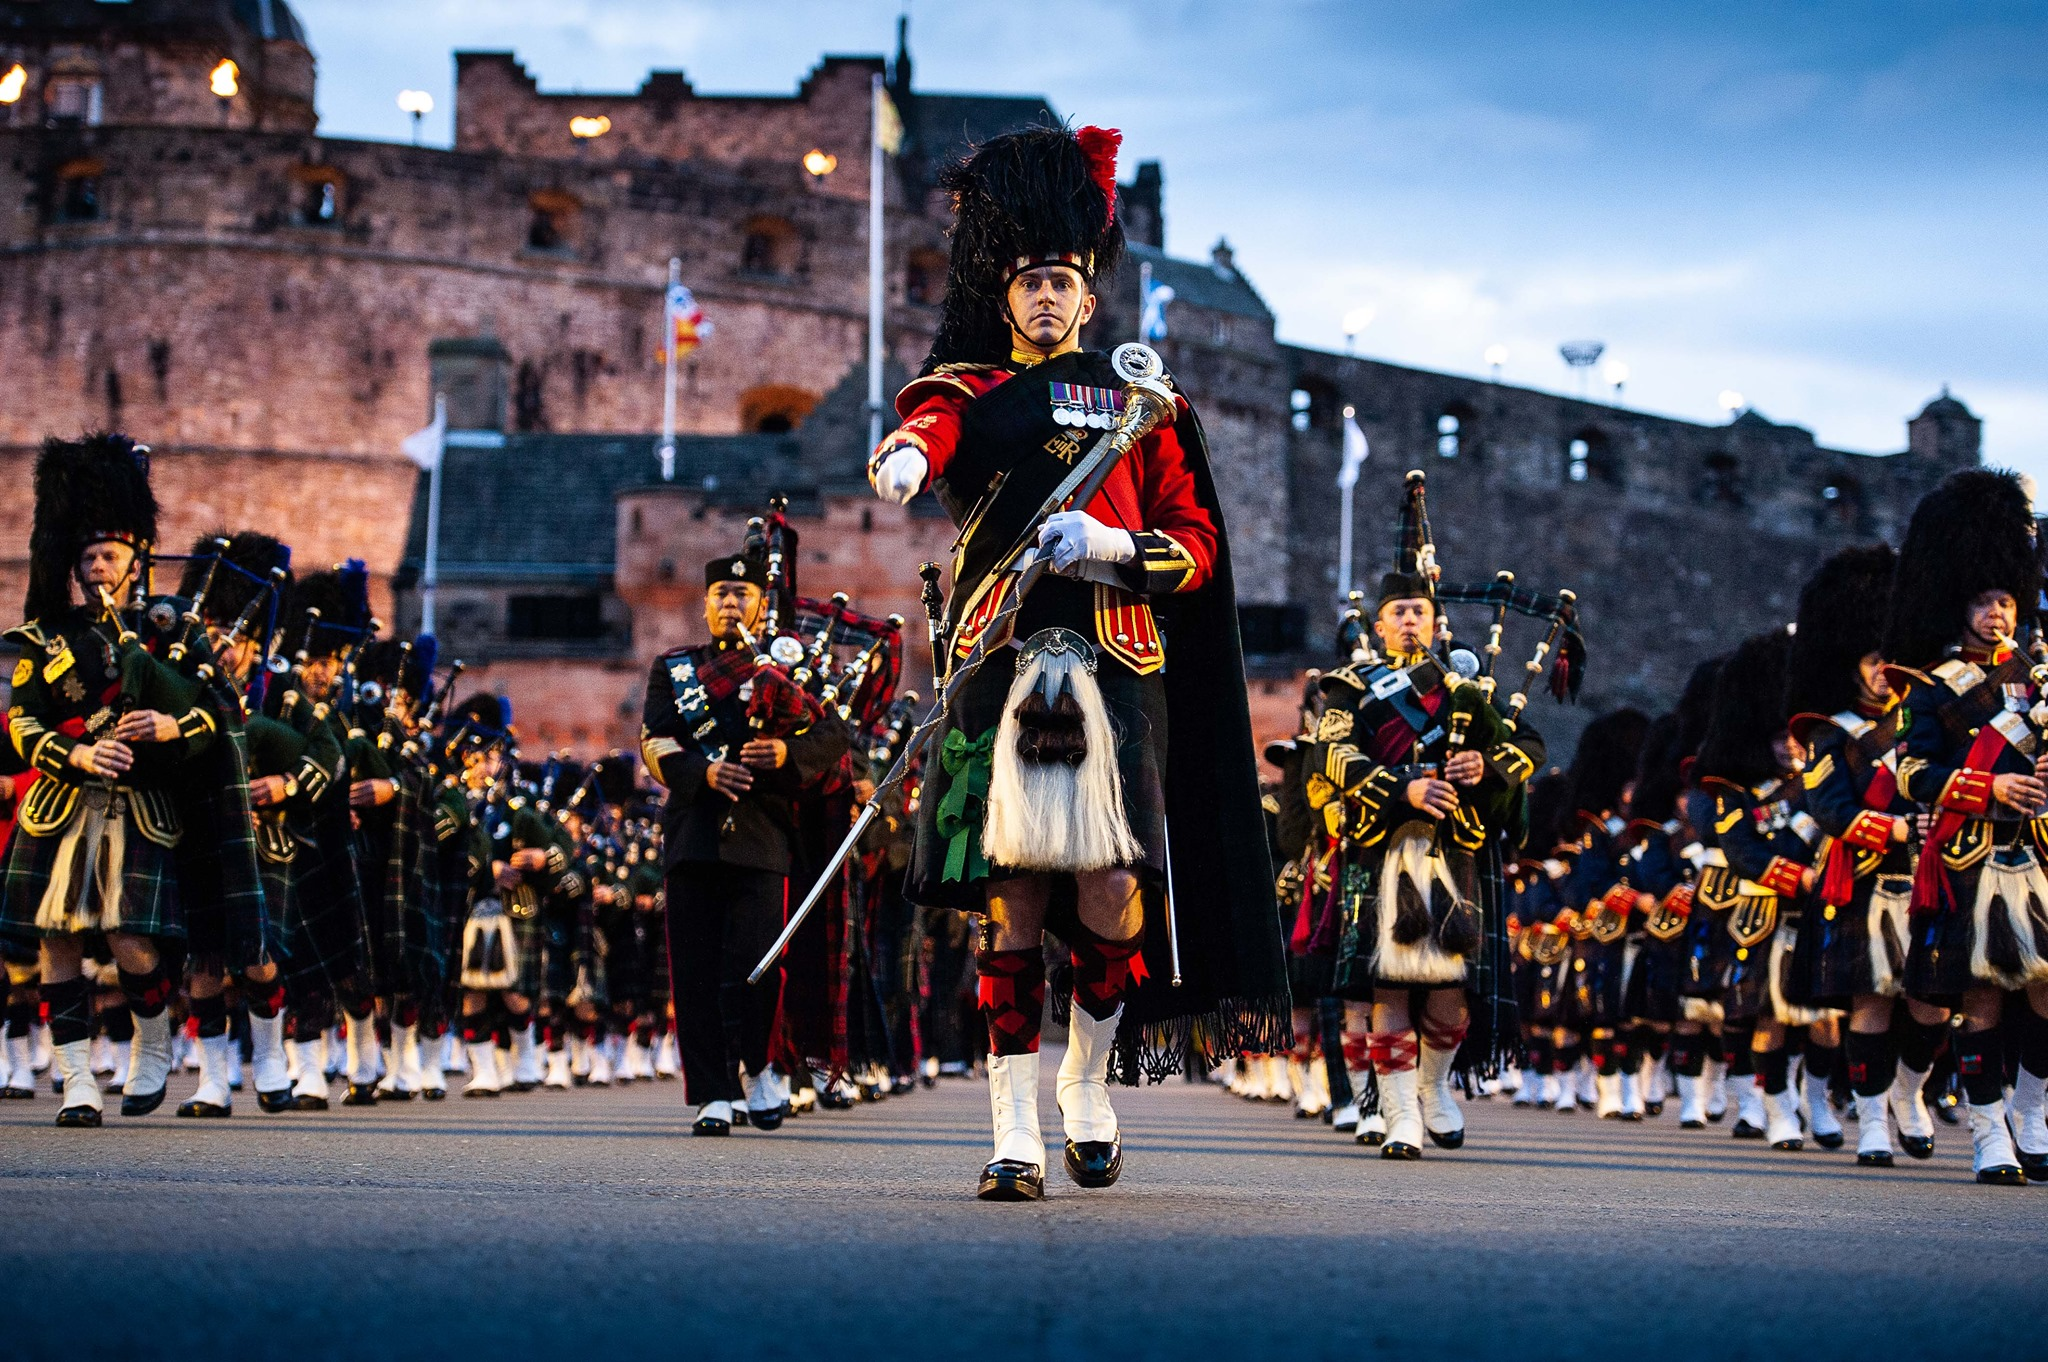 Pipe Major Heading the way for The Edinburgh Military Tattoo